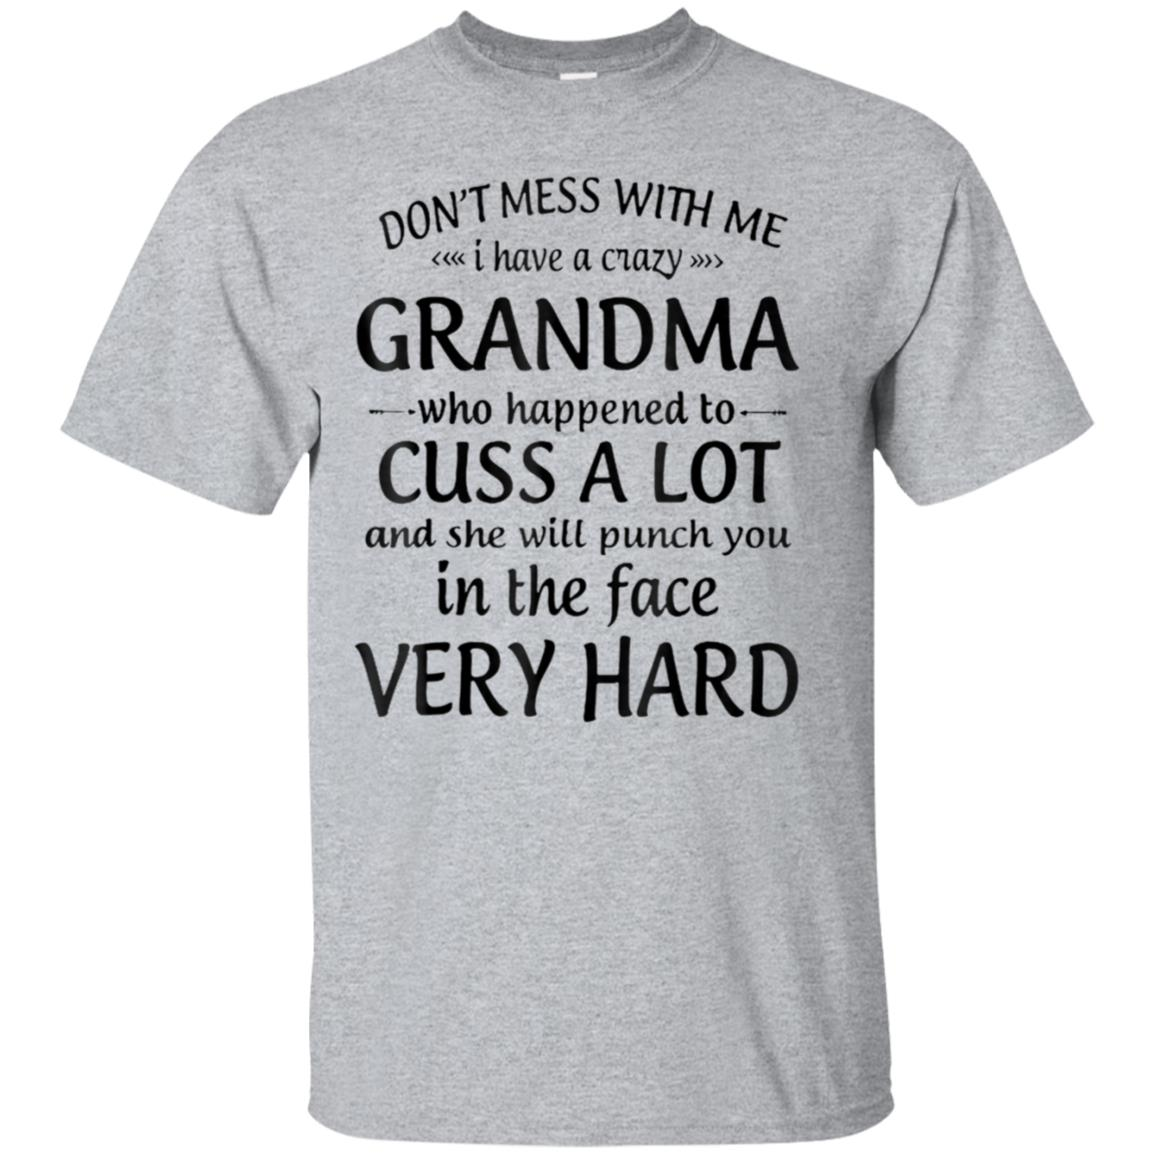 Don't mess with me I have a crazy grandma T-shirt 99promocode